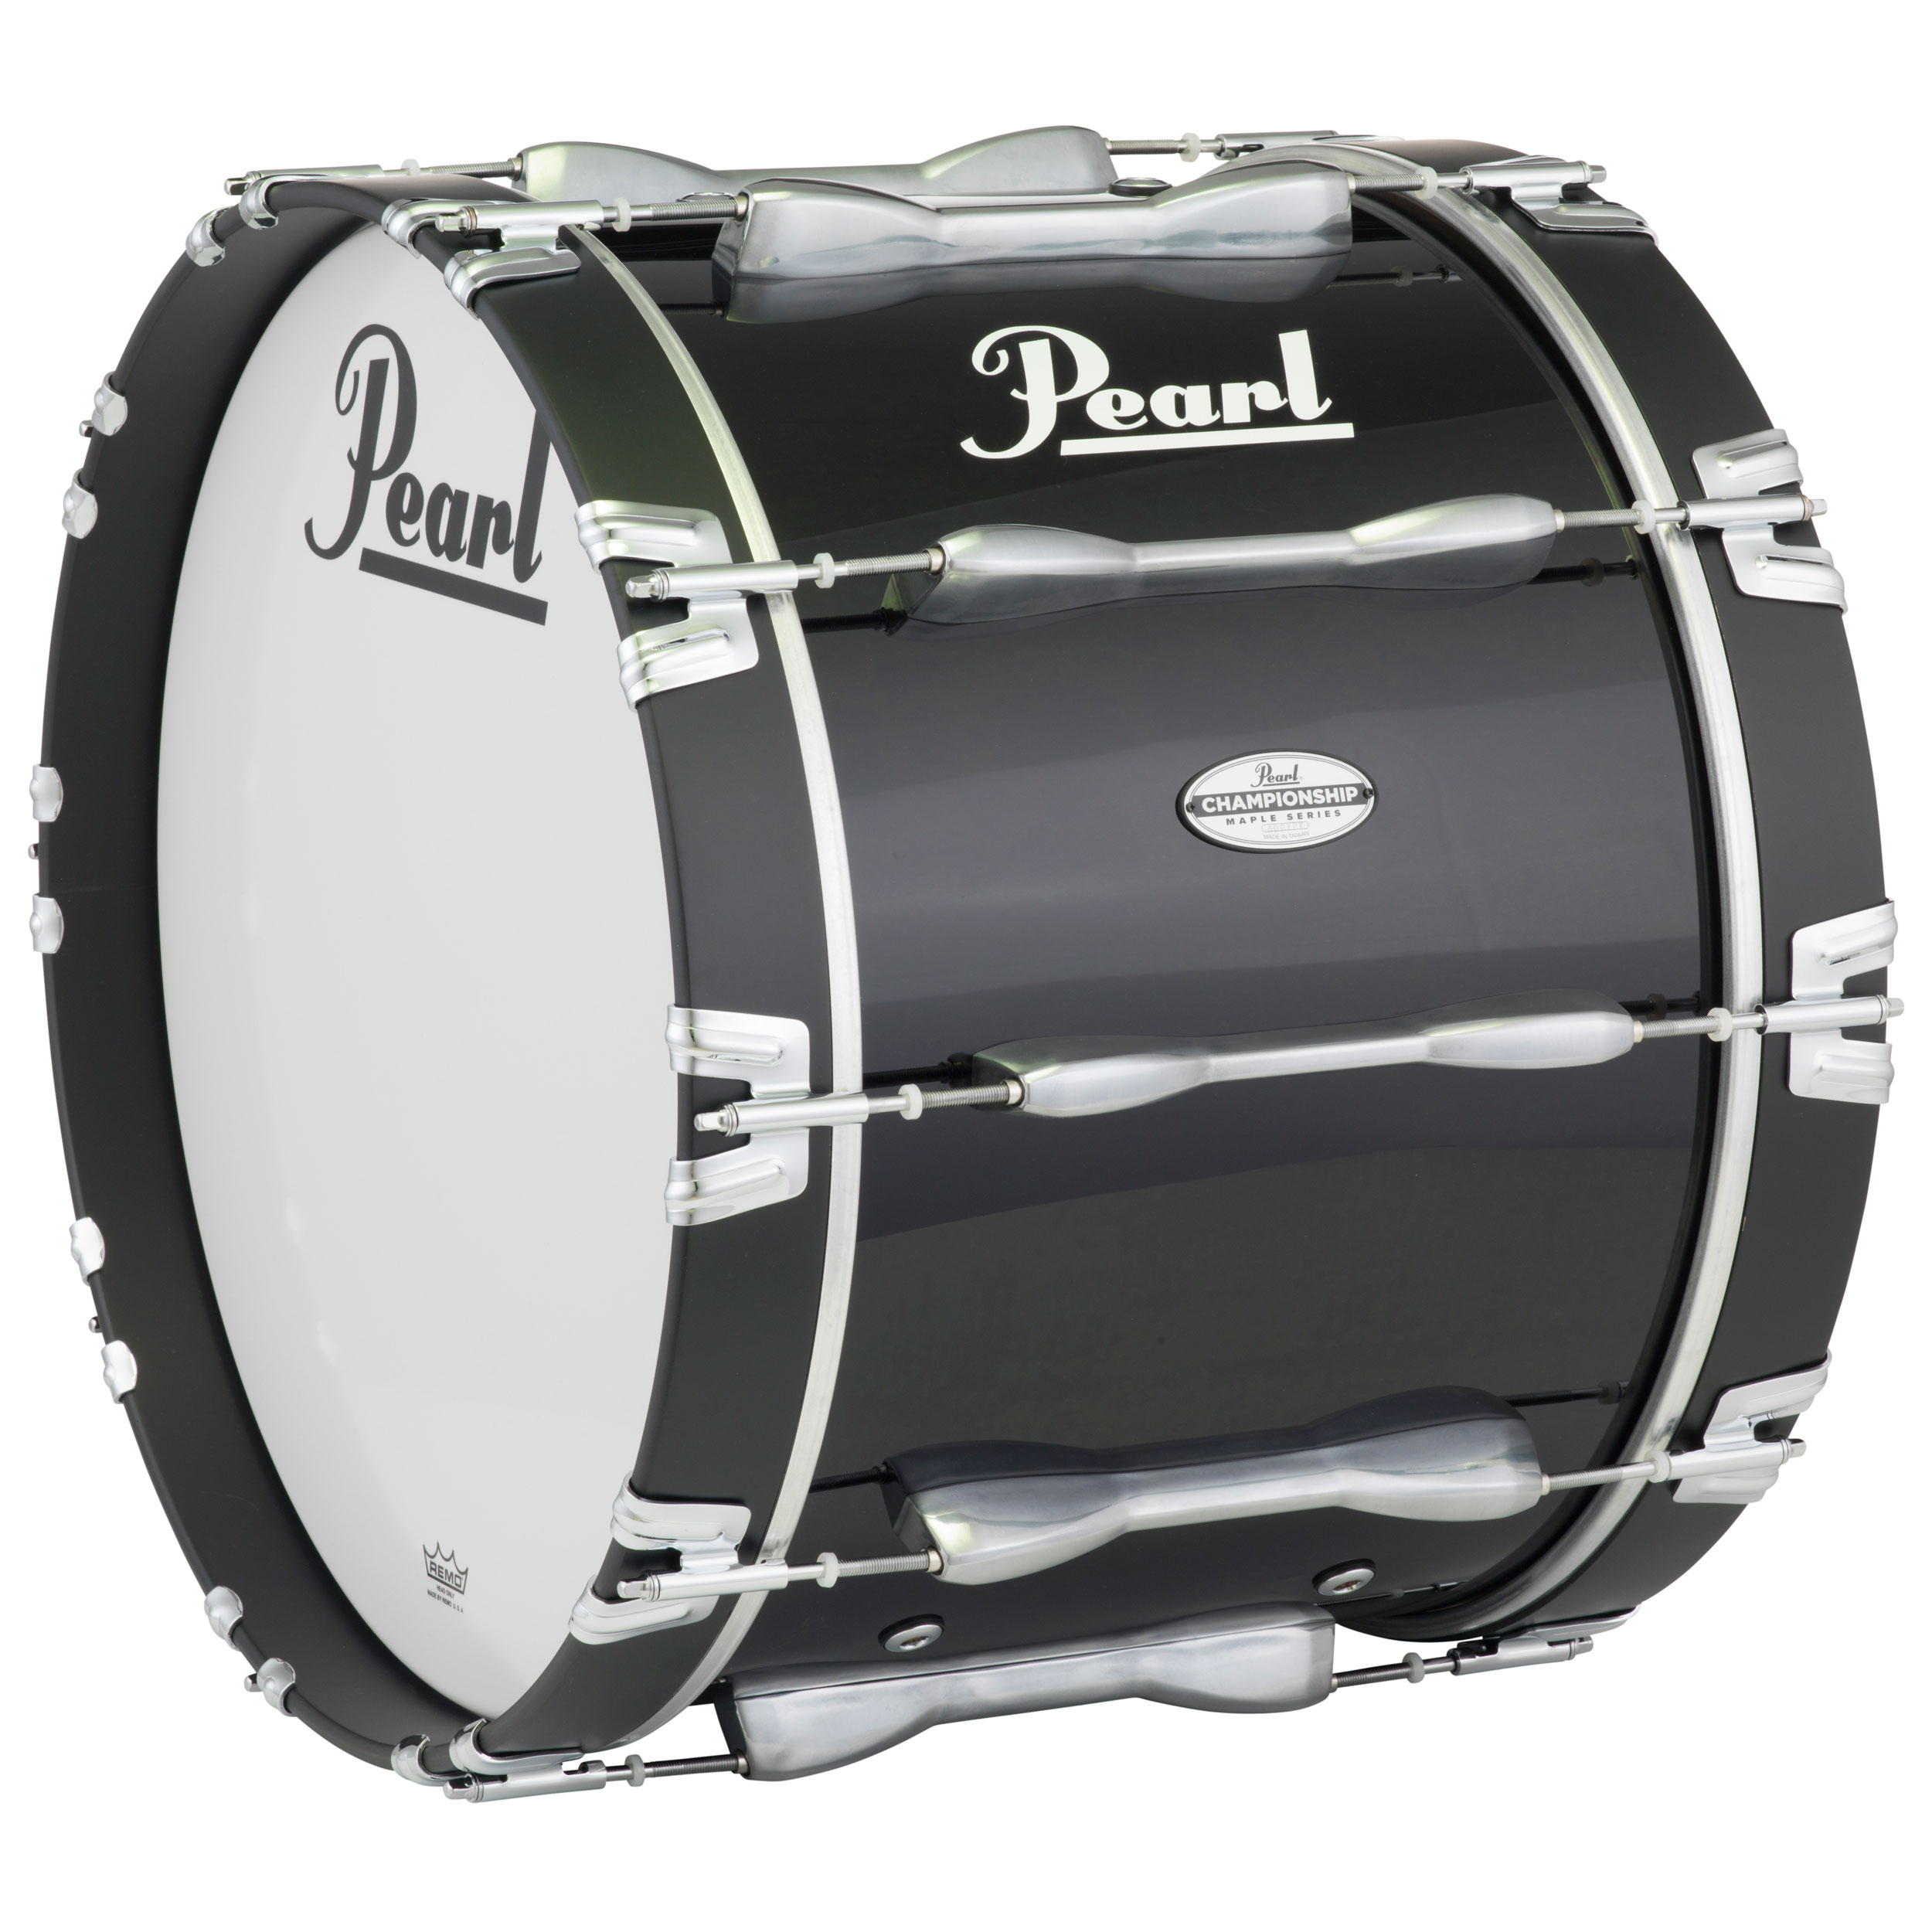 "Pearl 20"" PBDM Championship Maple Marching Bass Drum in Wrap Finish"